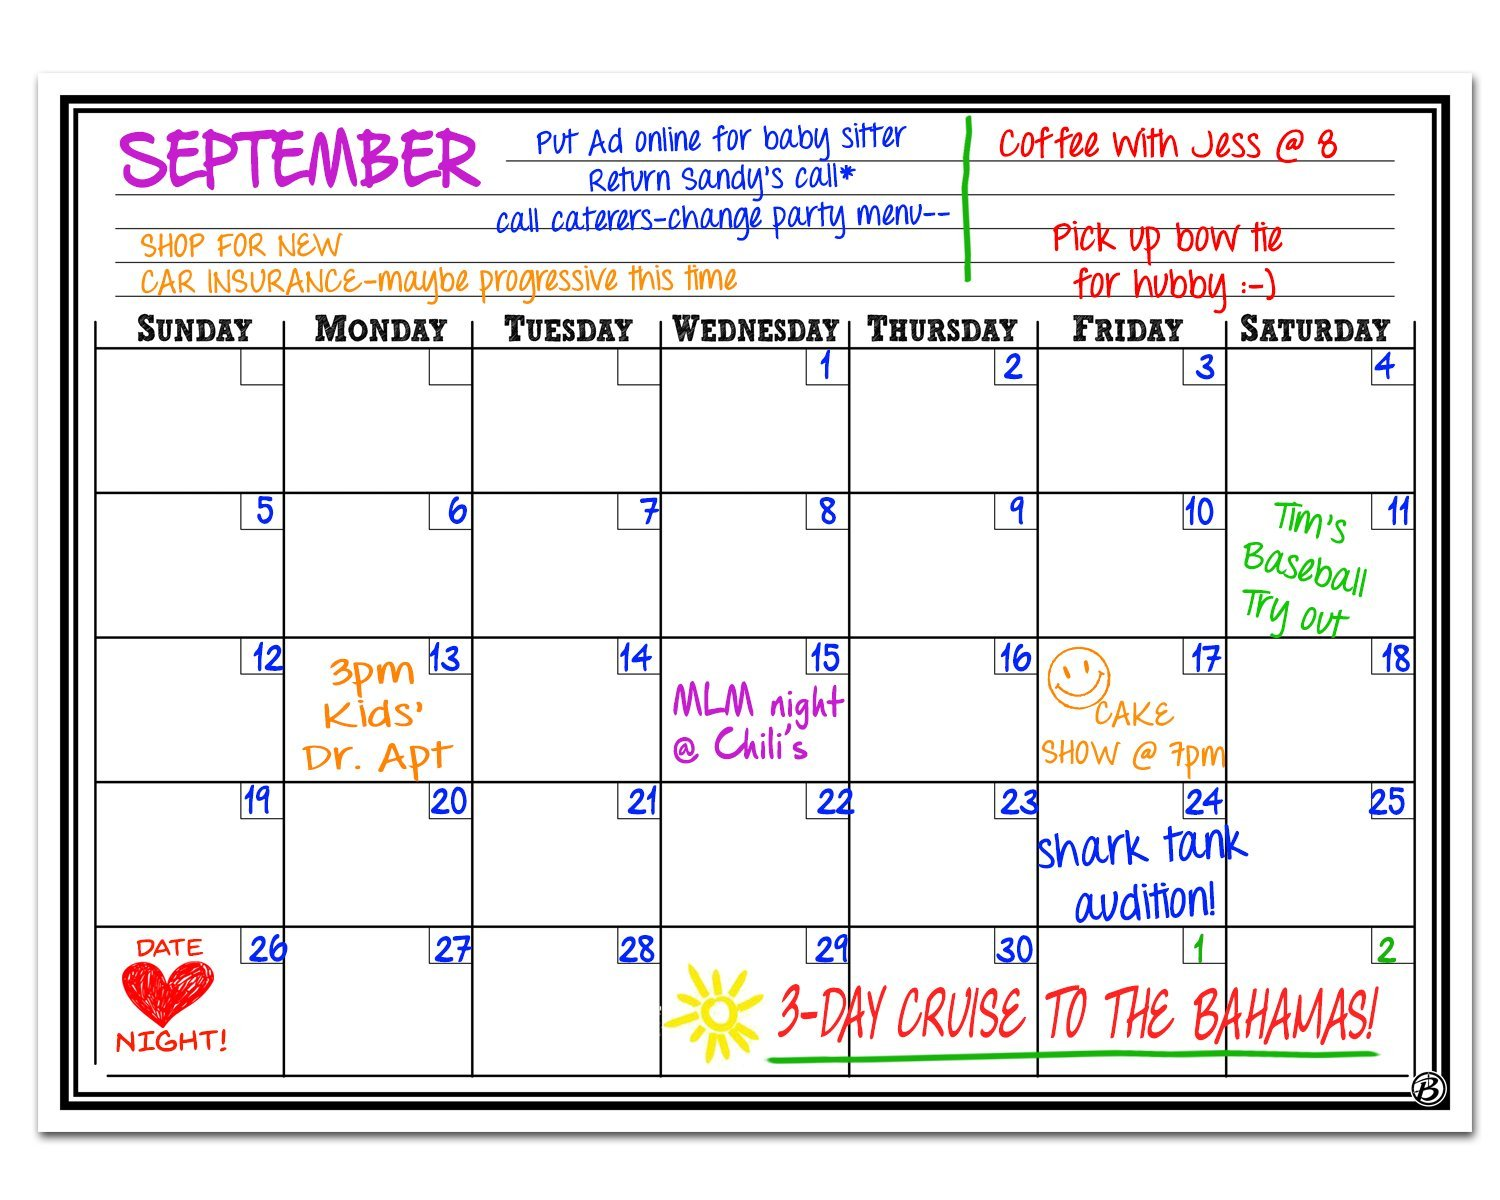 Smart Planner Magnetic Dry Erase Board Monthly Calendar Planner, 12 x 16-Inch Signs Authority